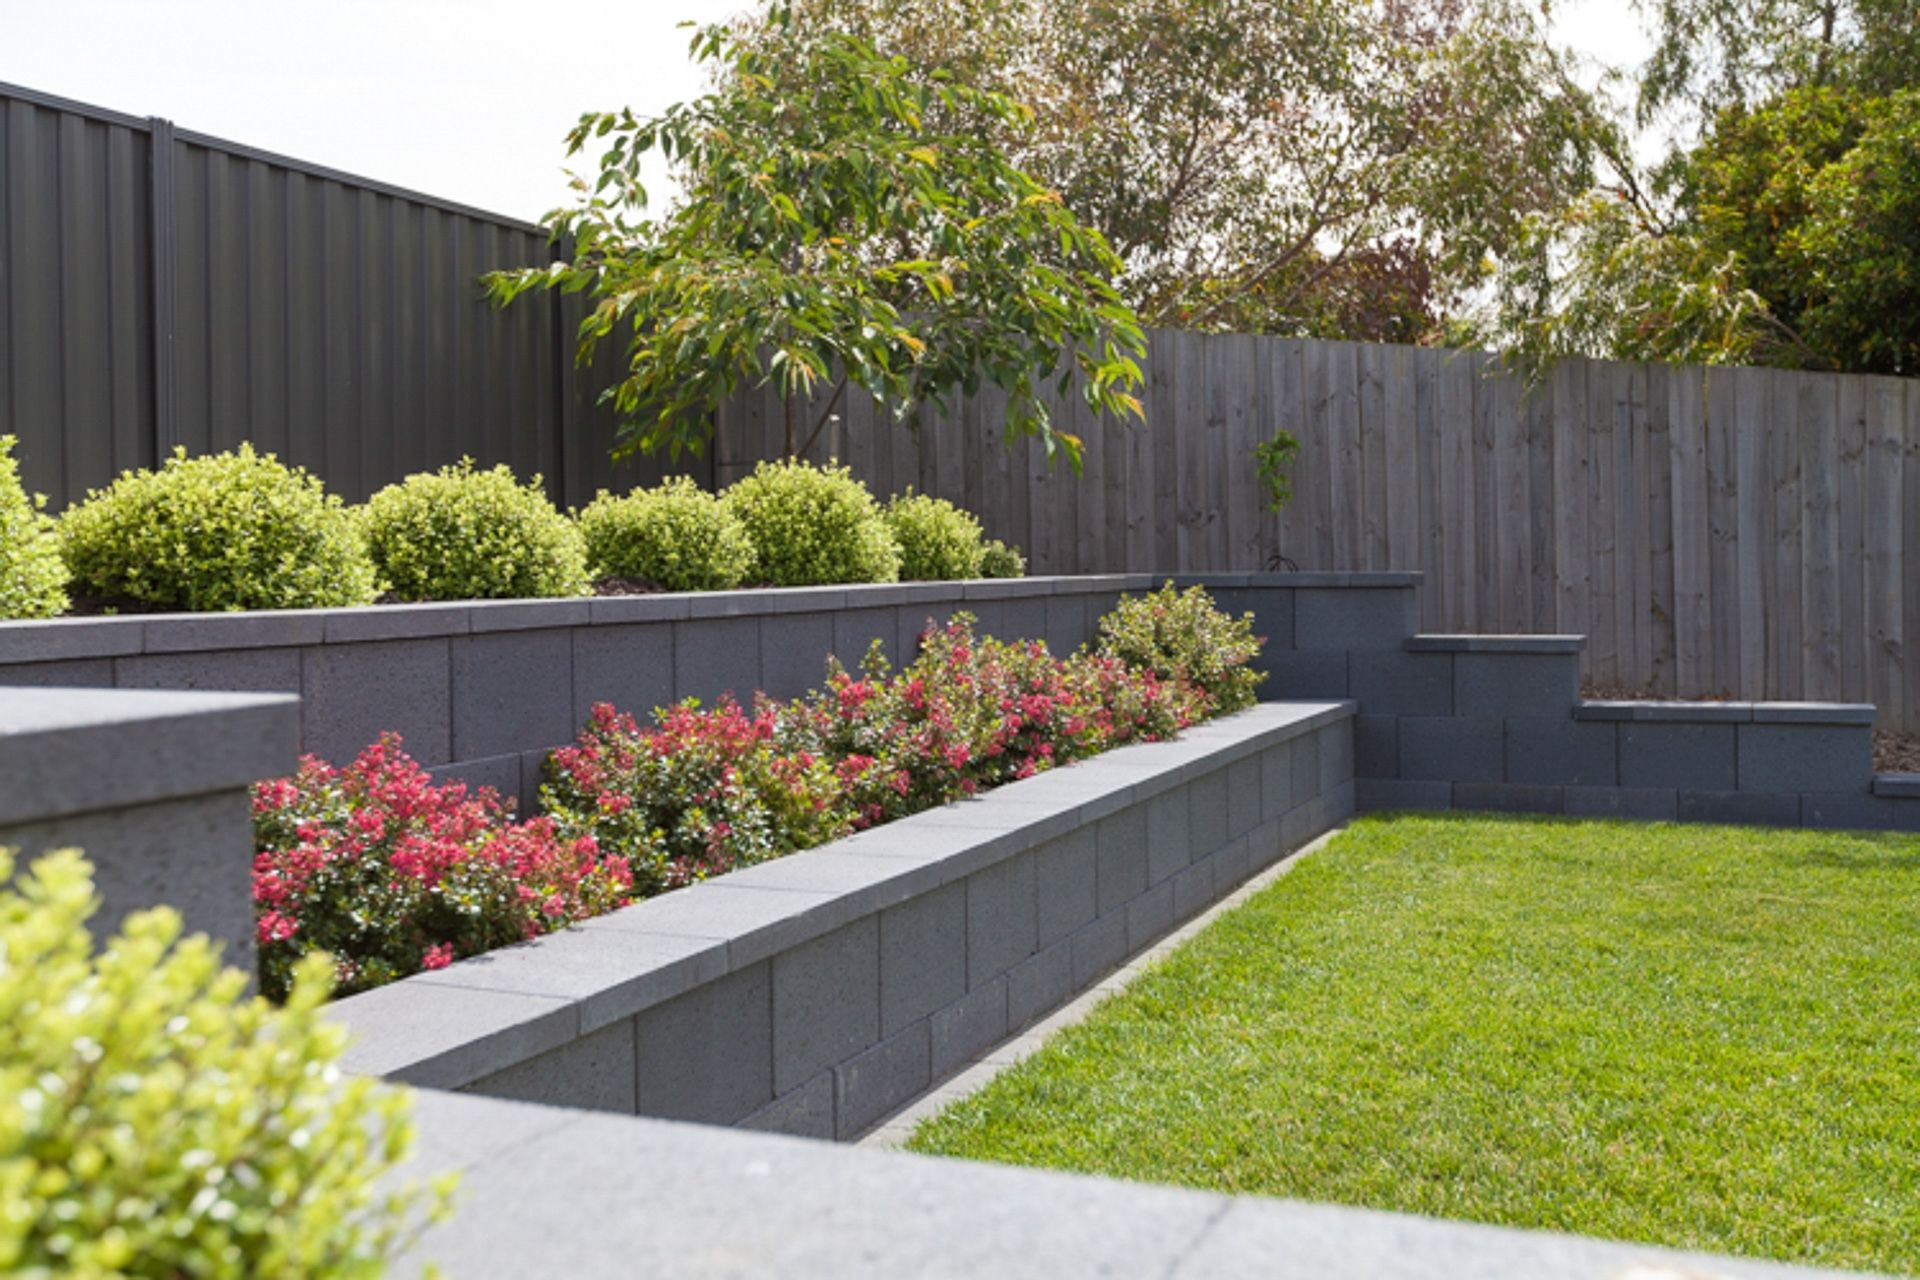 Walls By Natural Path Landscaping Front Yard Landscaping Landscaping Retaining Walls Sloped Garden